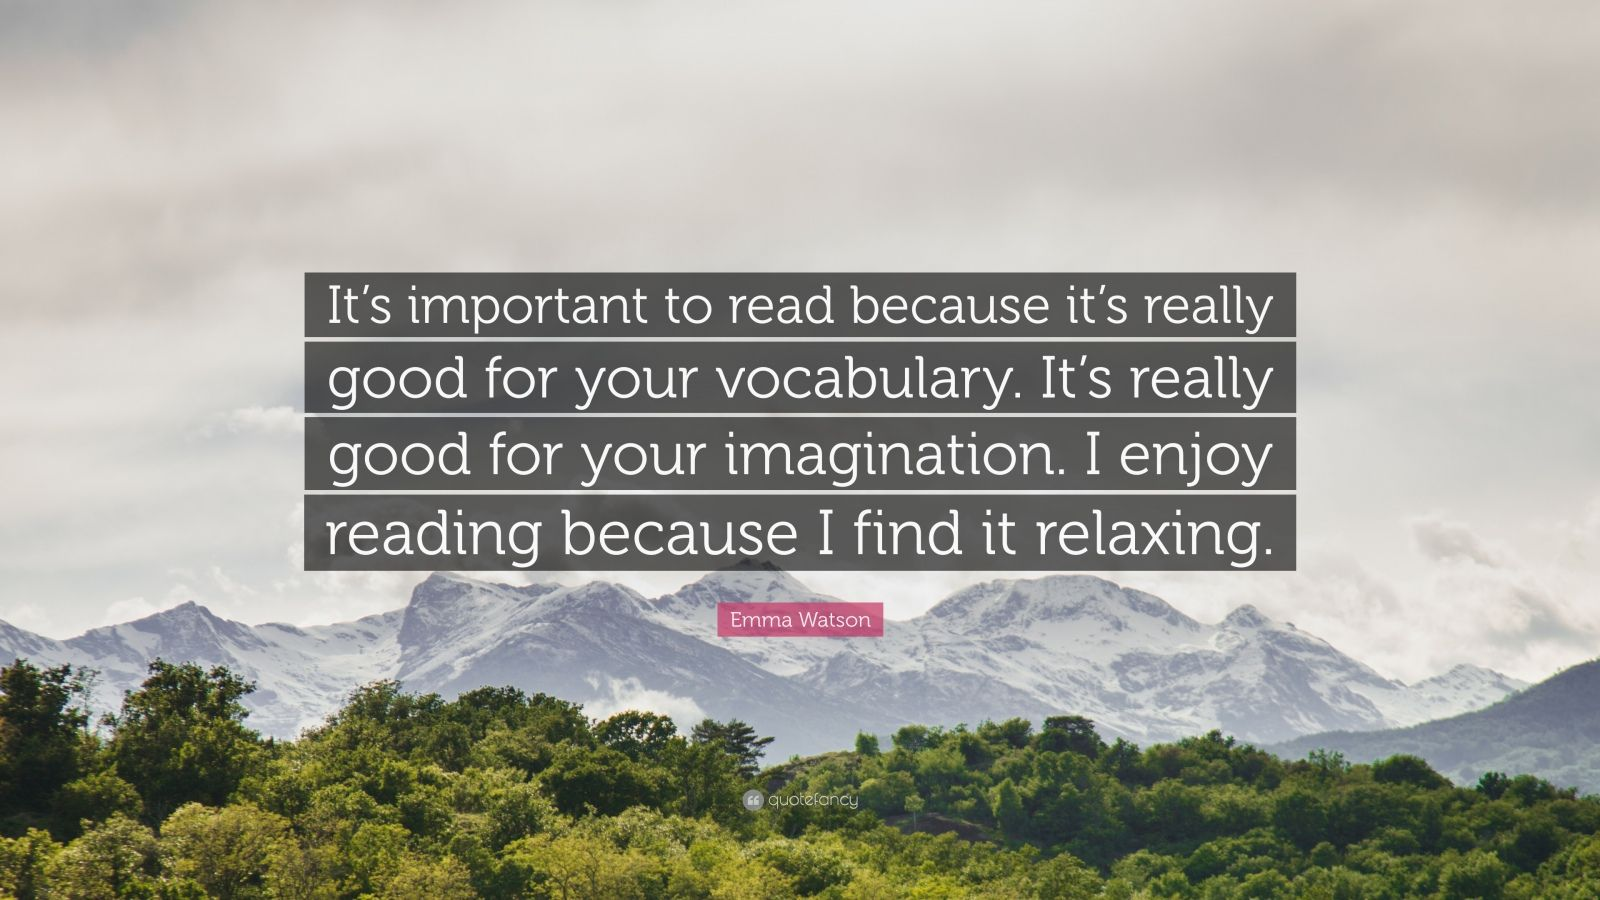 """Emma Watson Quote: """"It's important to read because it's really good for your vocabulary. It's really good for your imagination. I enjoy reading because I find it relaxing."""""""